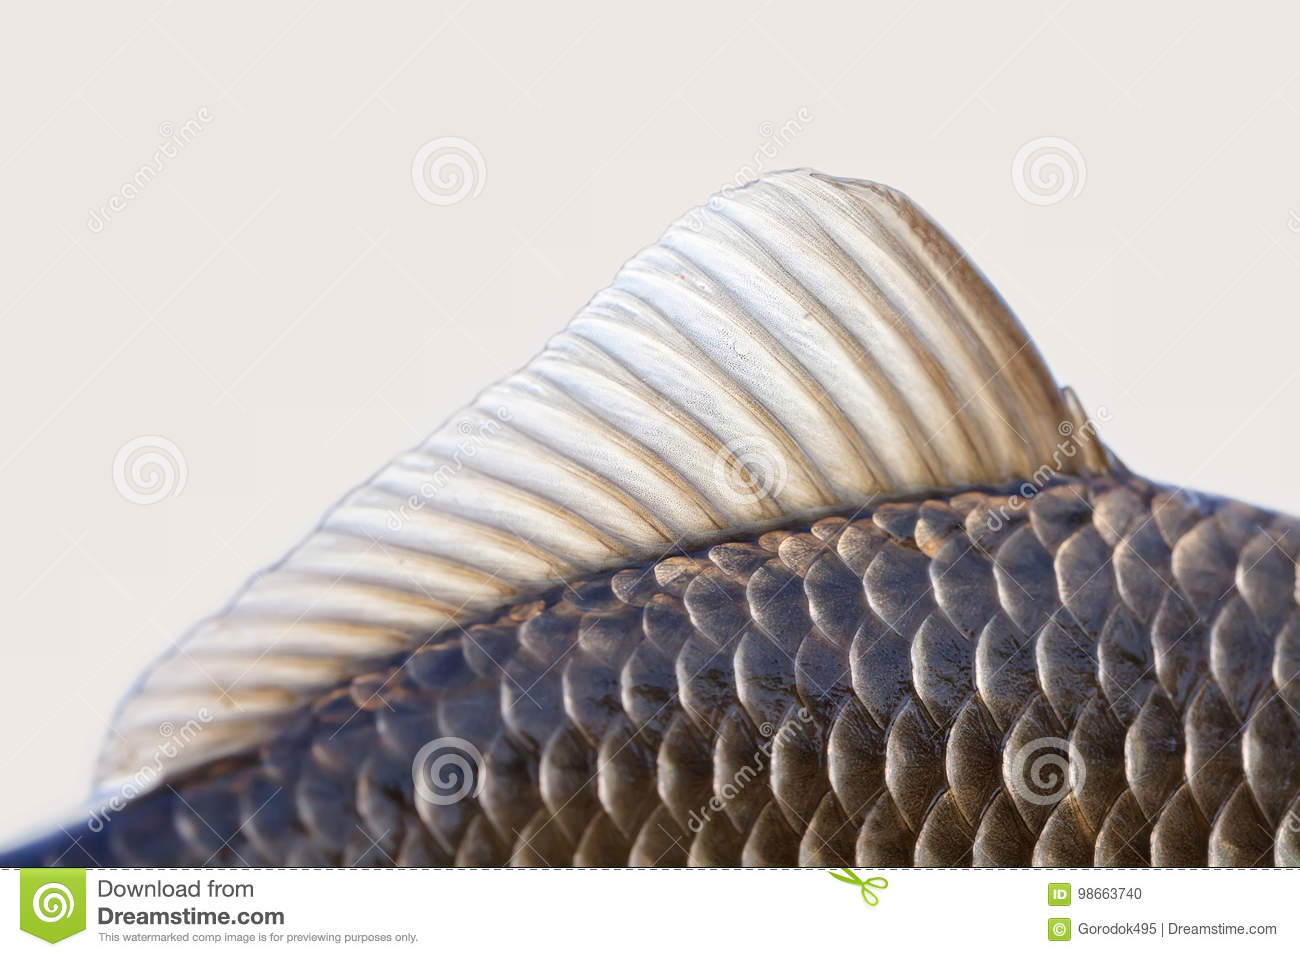 Carassius fish fin, skin scales textured photo. Macro view Crucian carp scaly pattern. Selective focus, shallow depth